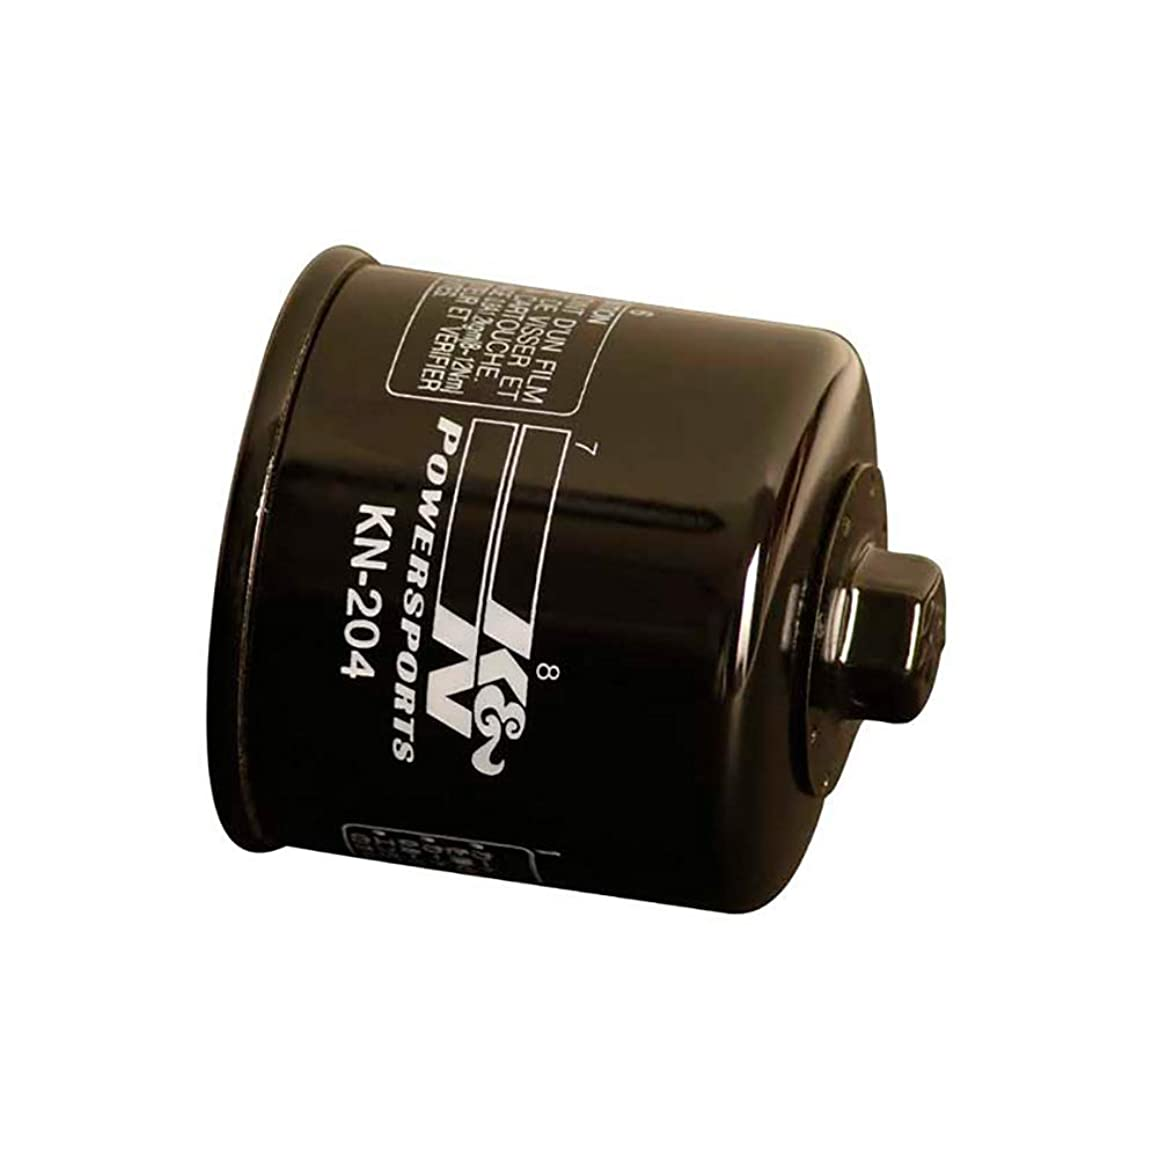 K&N KN-204C Powersports High Performance Oil Filter